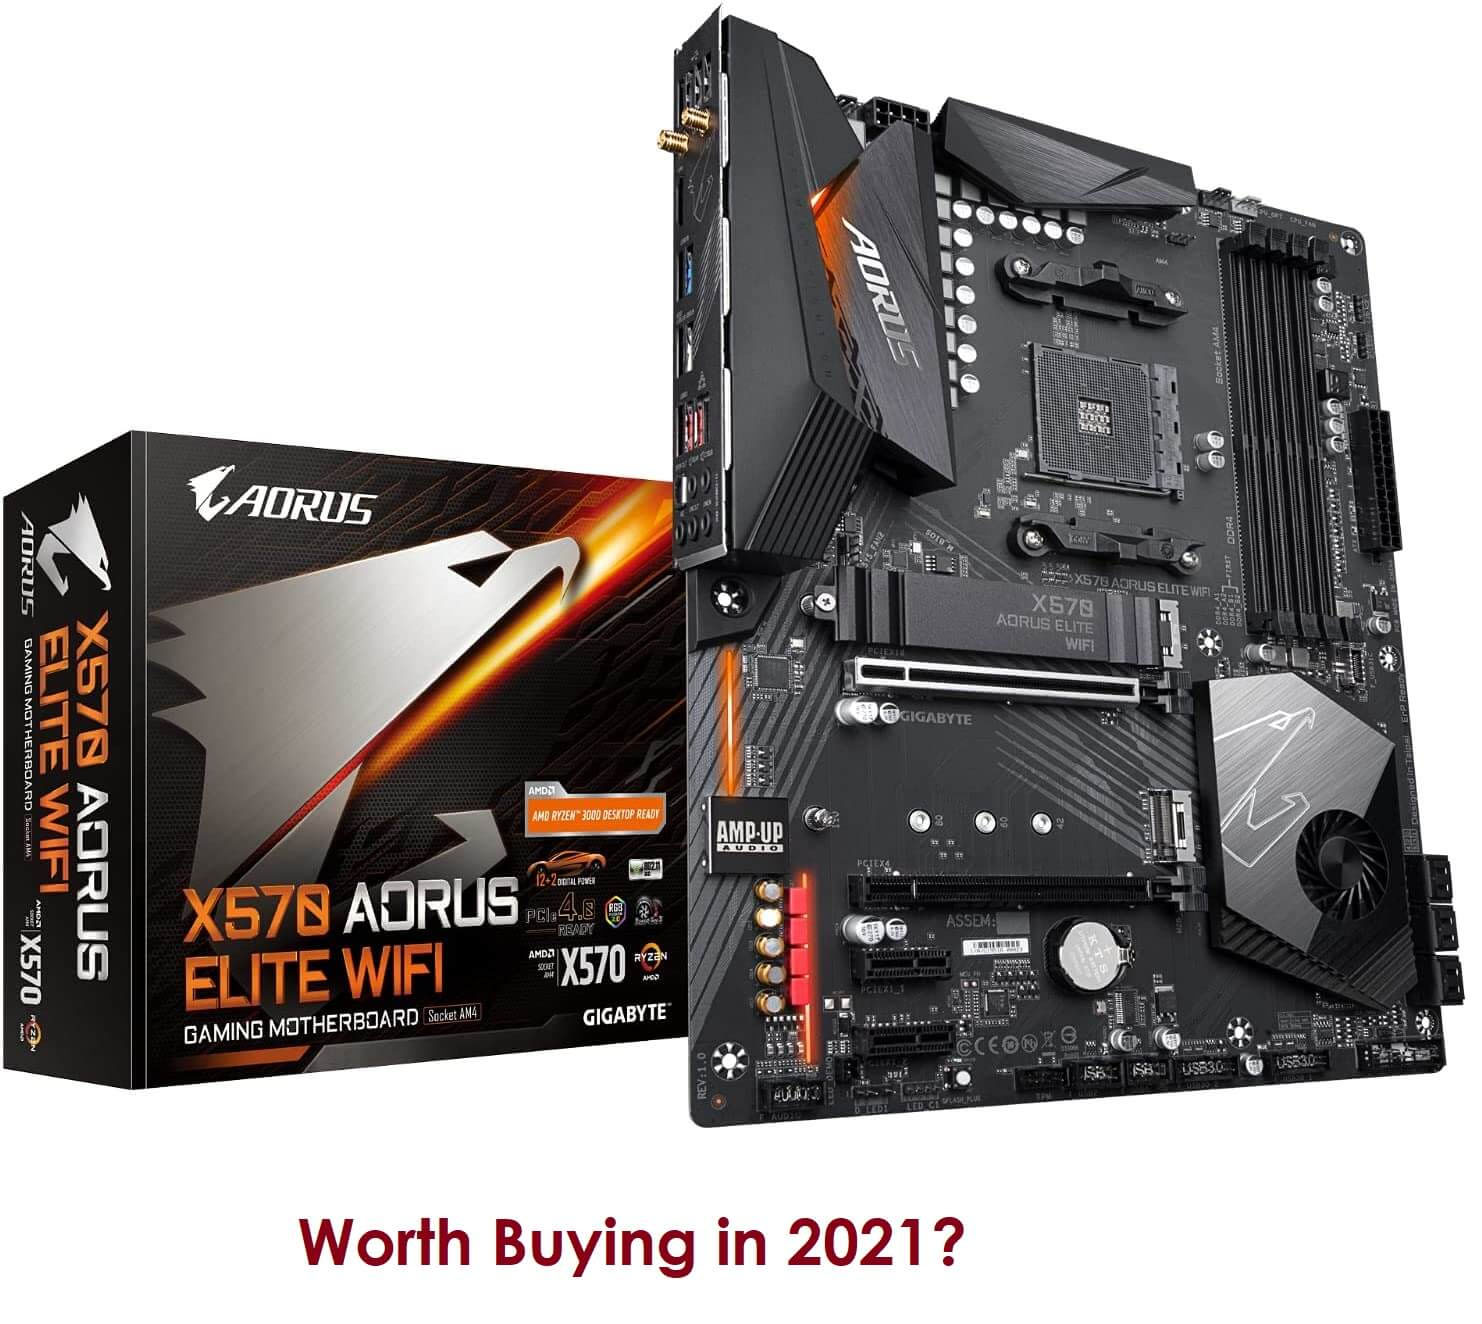 Gigabyte X570 Aorus Elite Review: Is it worth buying in 2021?